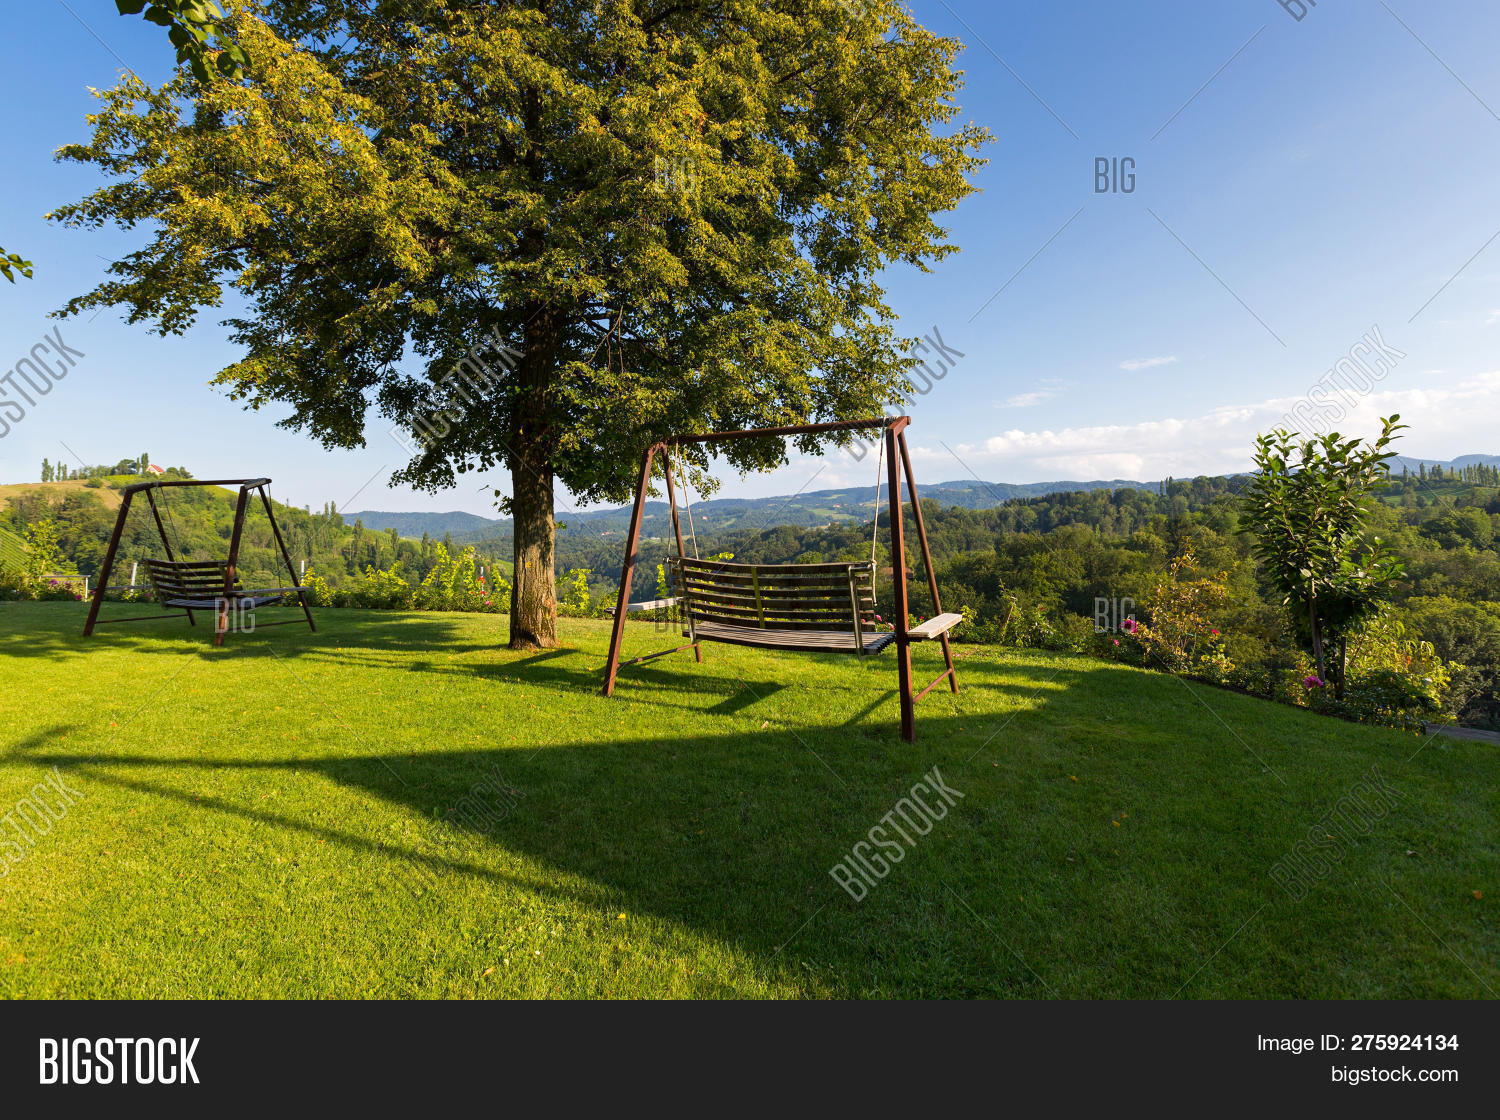 Wooden Porch Swing Image & Photo (Free Trial) | Bigstock With Regard To Vineyard Porch Swings (Image 24 of 25)